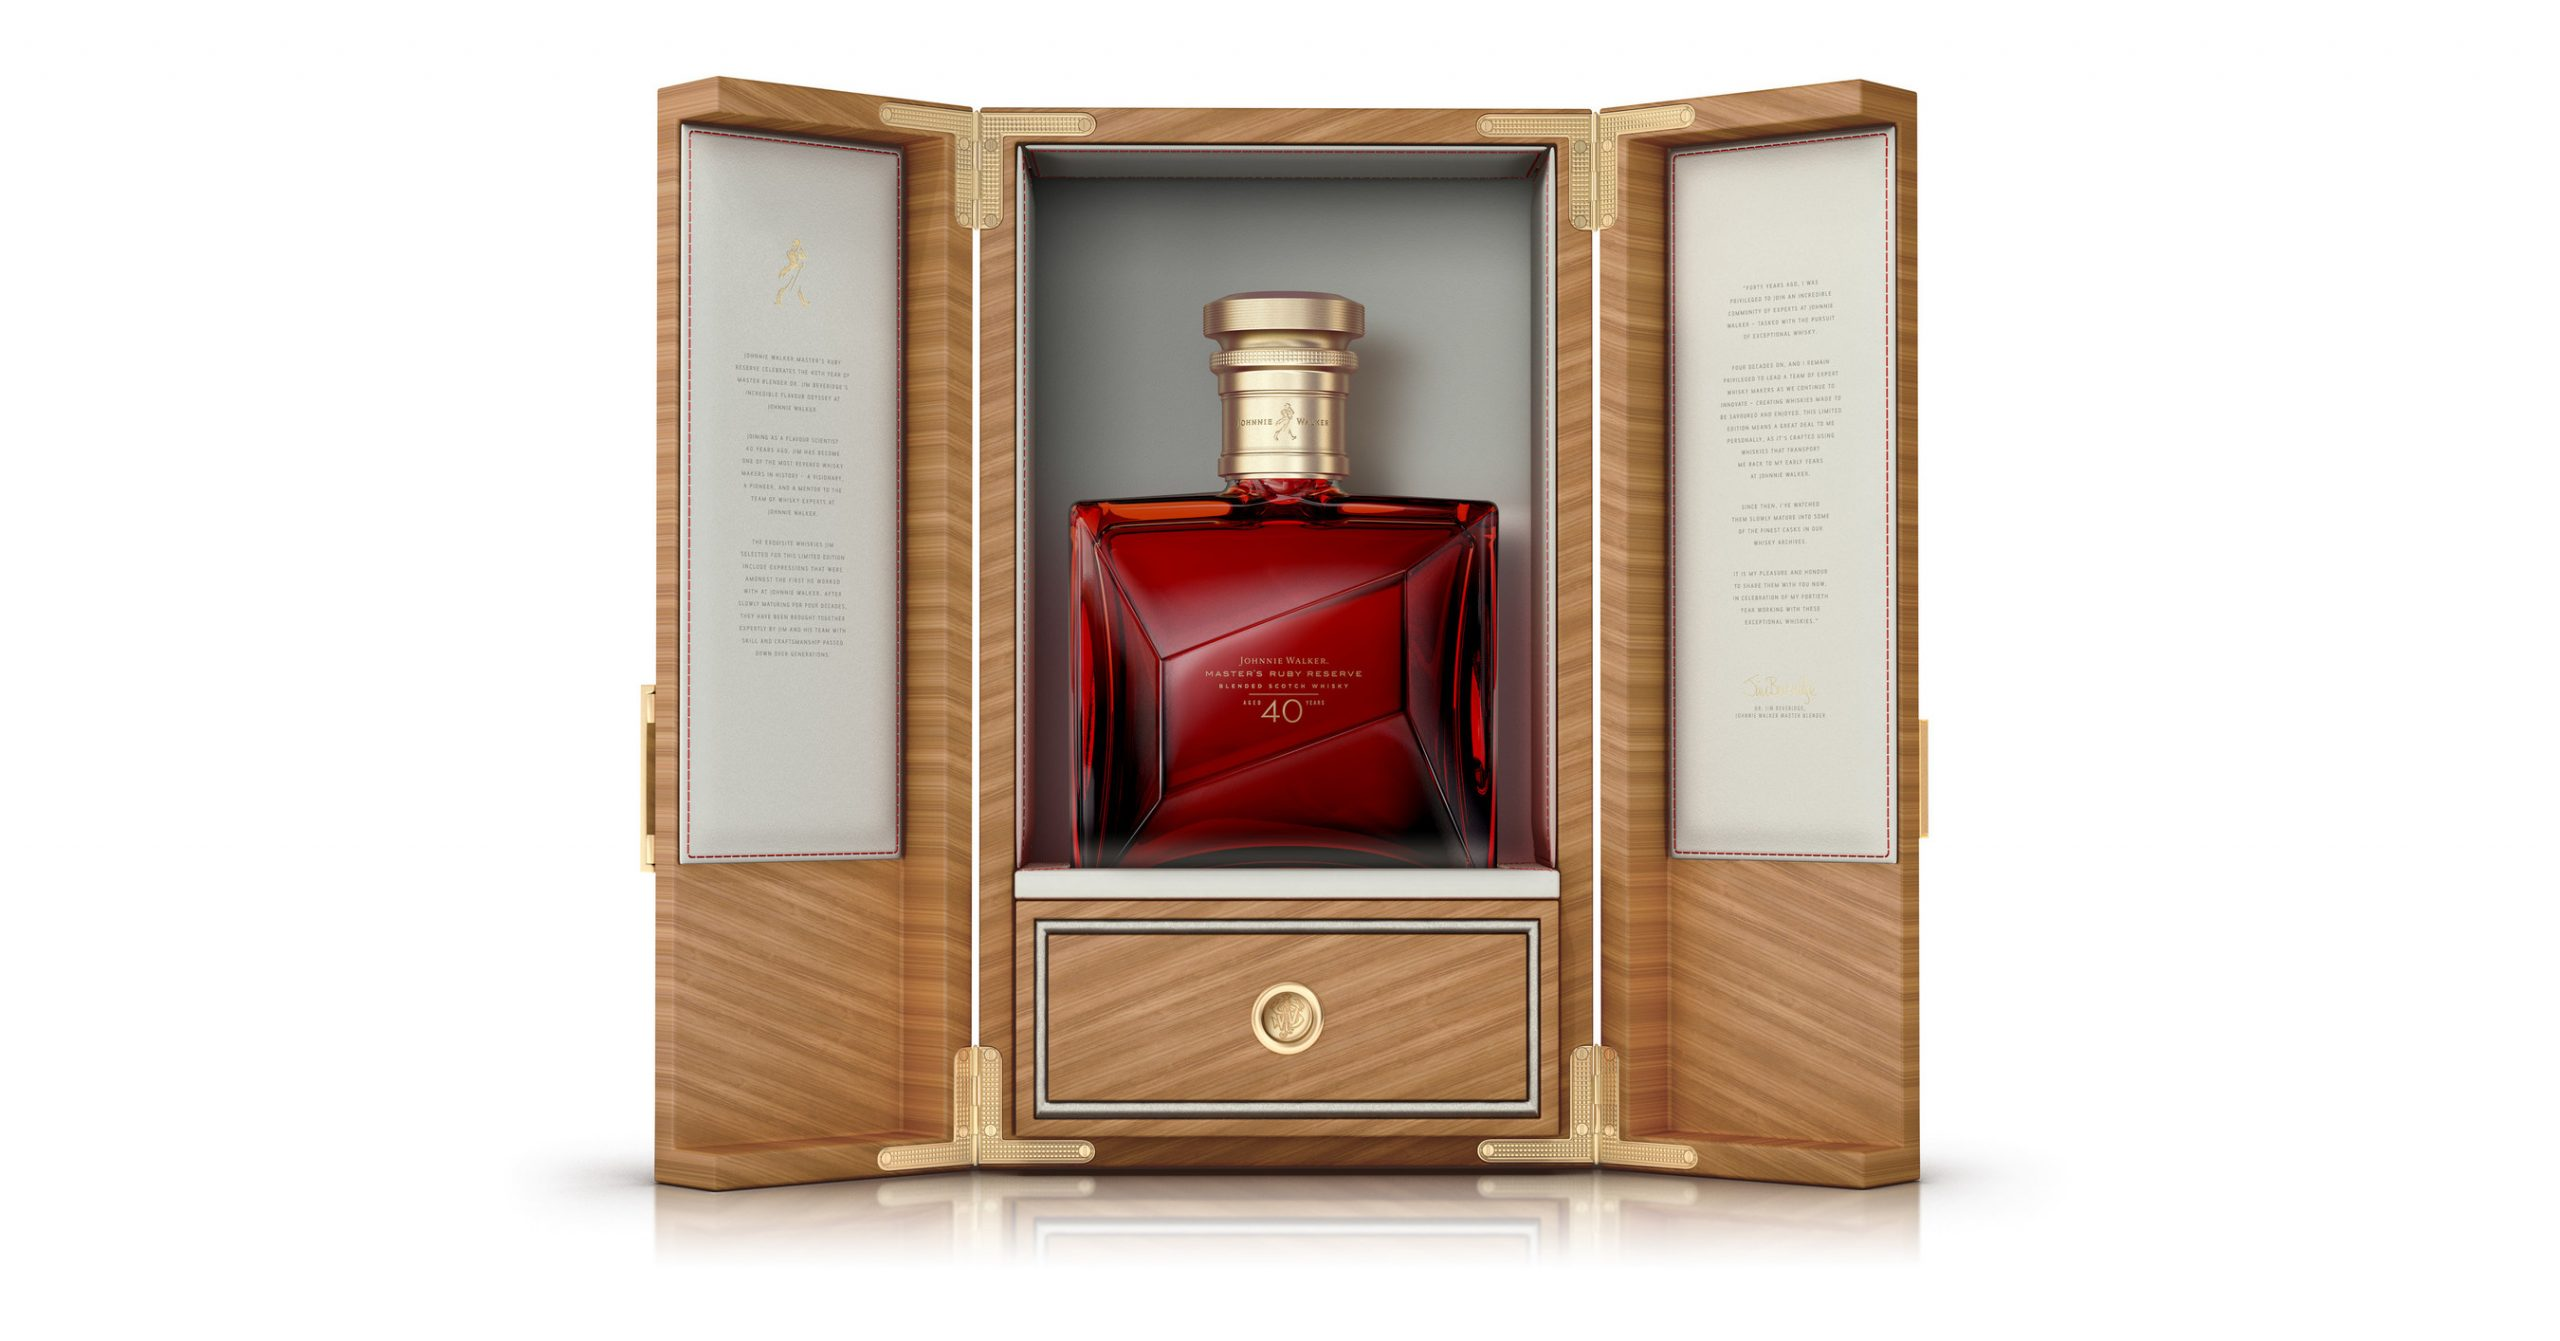 Introducing Johnnie Walker Master's Ruby Reserve: Extremely Limited Edition Whisky Celebrating Master Blender Jim Beveridge's 40th Anniversary photo